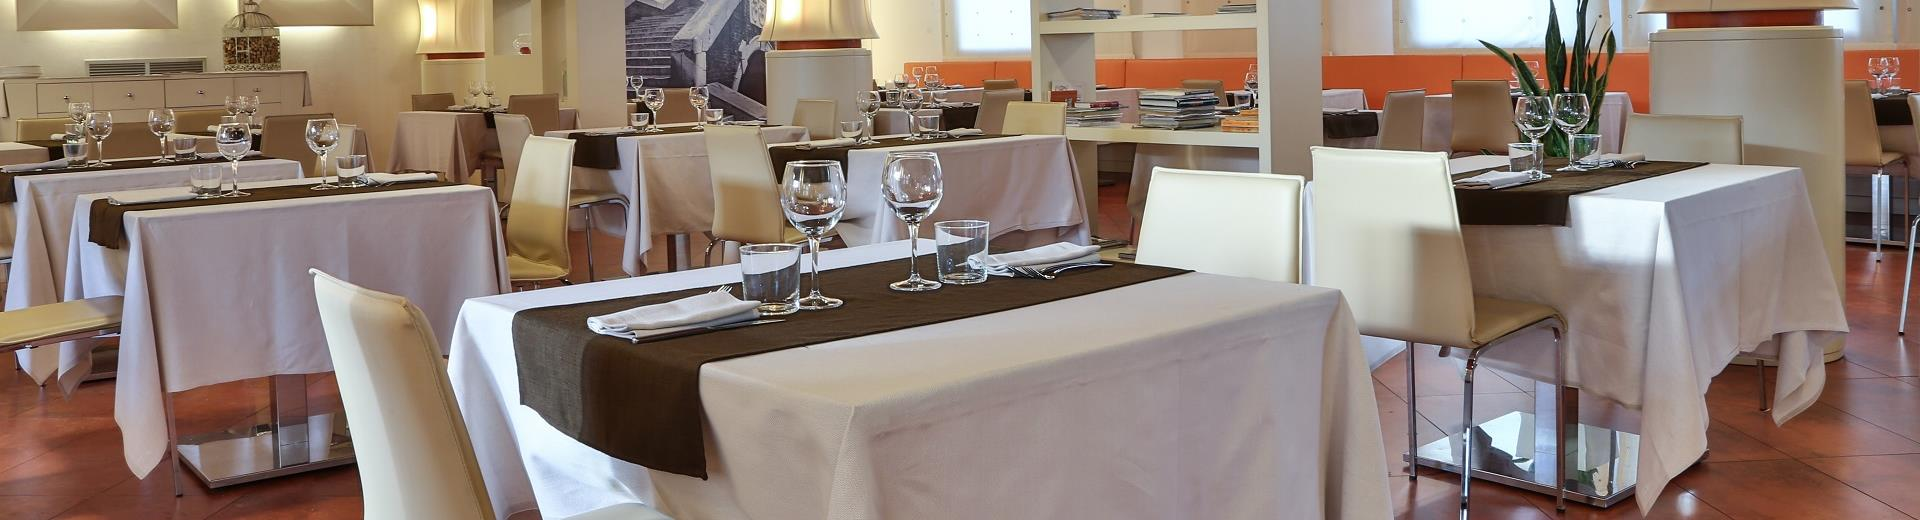 Try the food service at BW Plus Hotel Galileo in Padua!